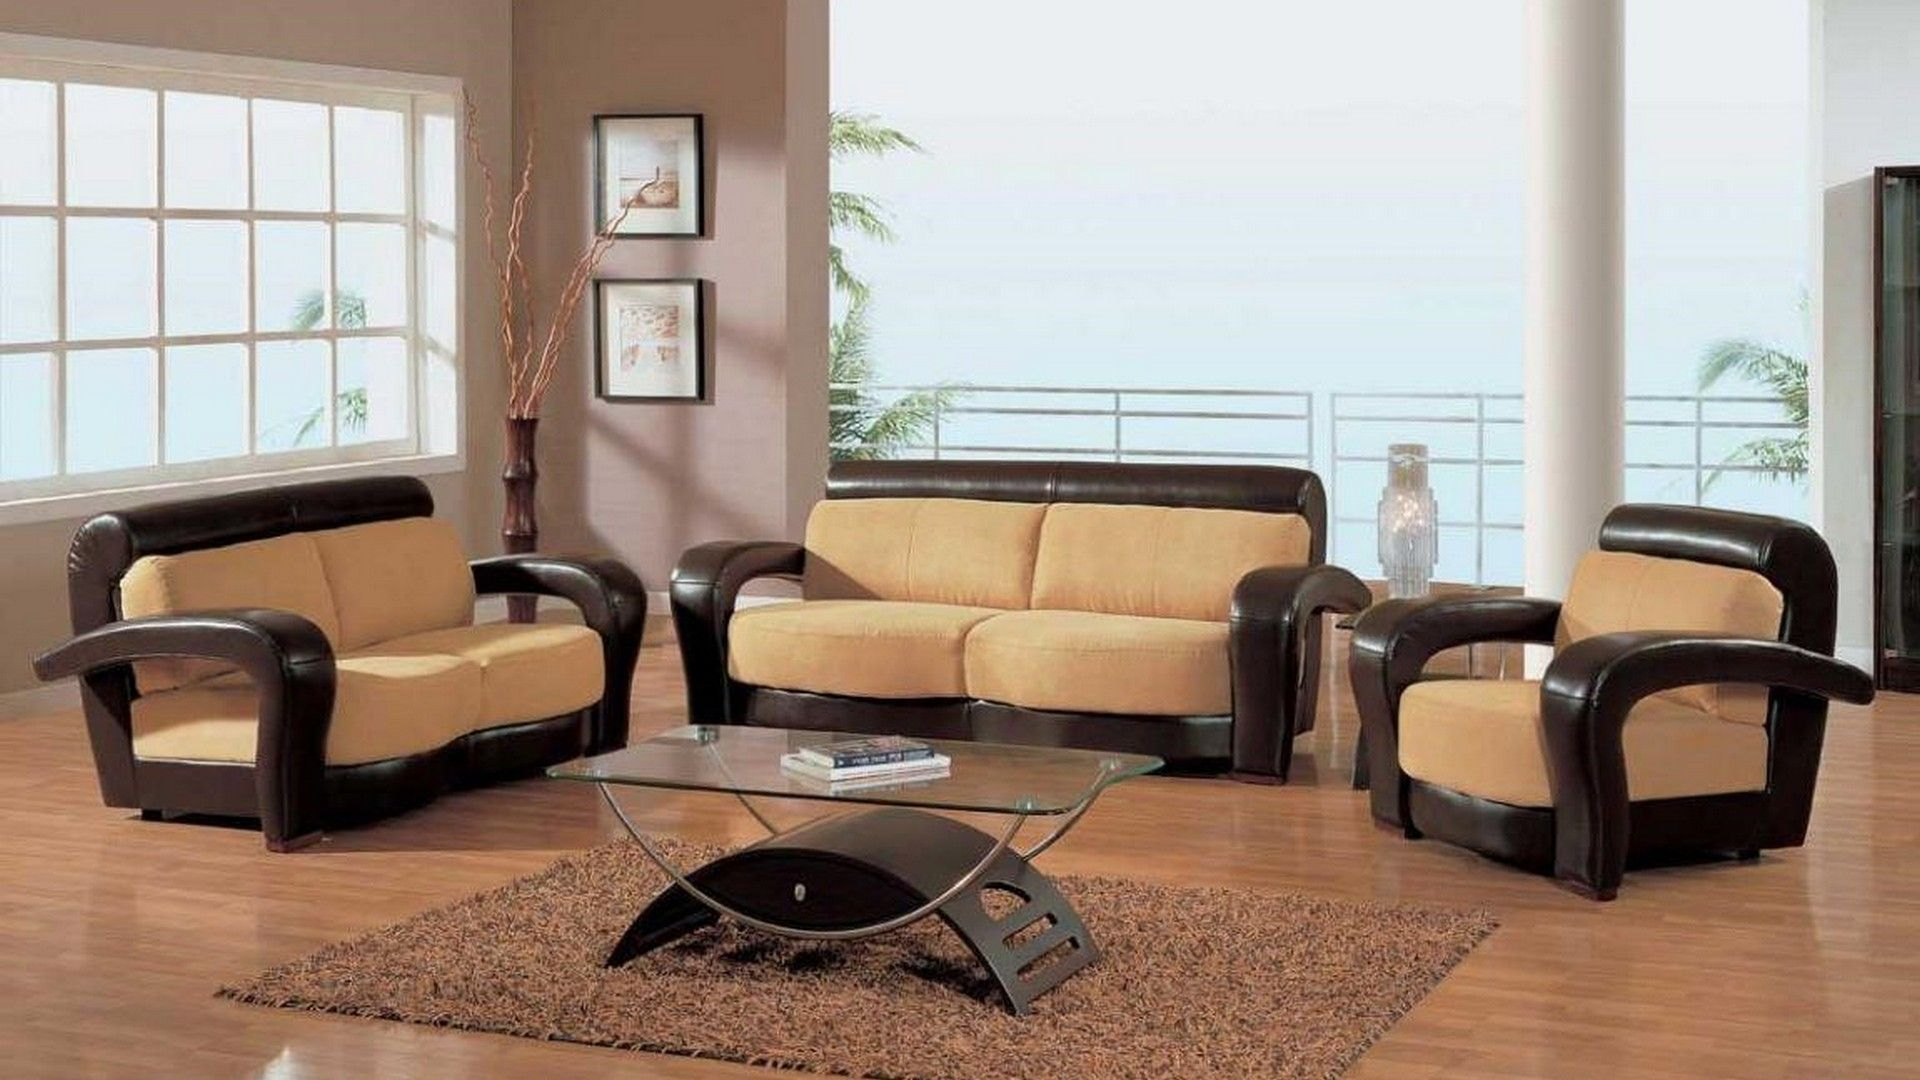 Glamorous Brown Wooden Sofa Set For Room With Hardwood Floor